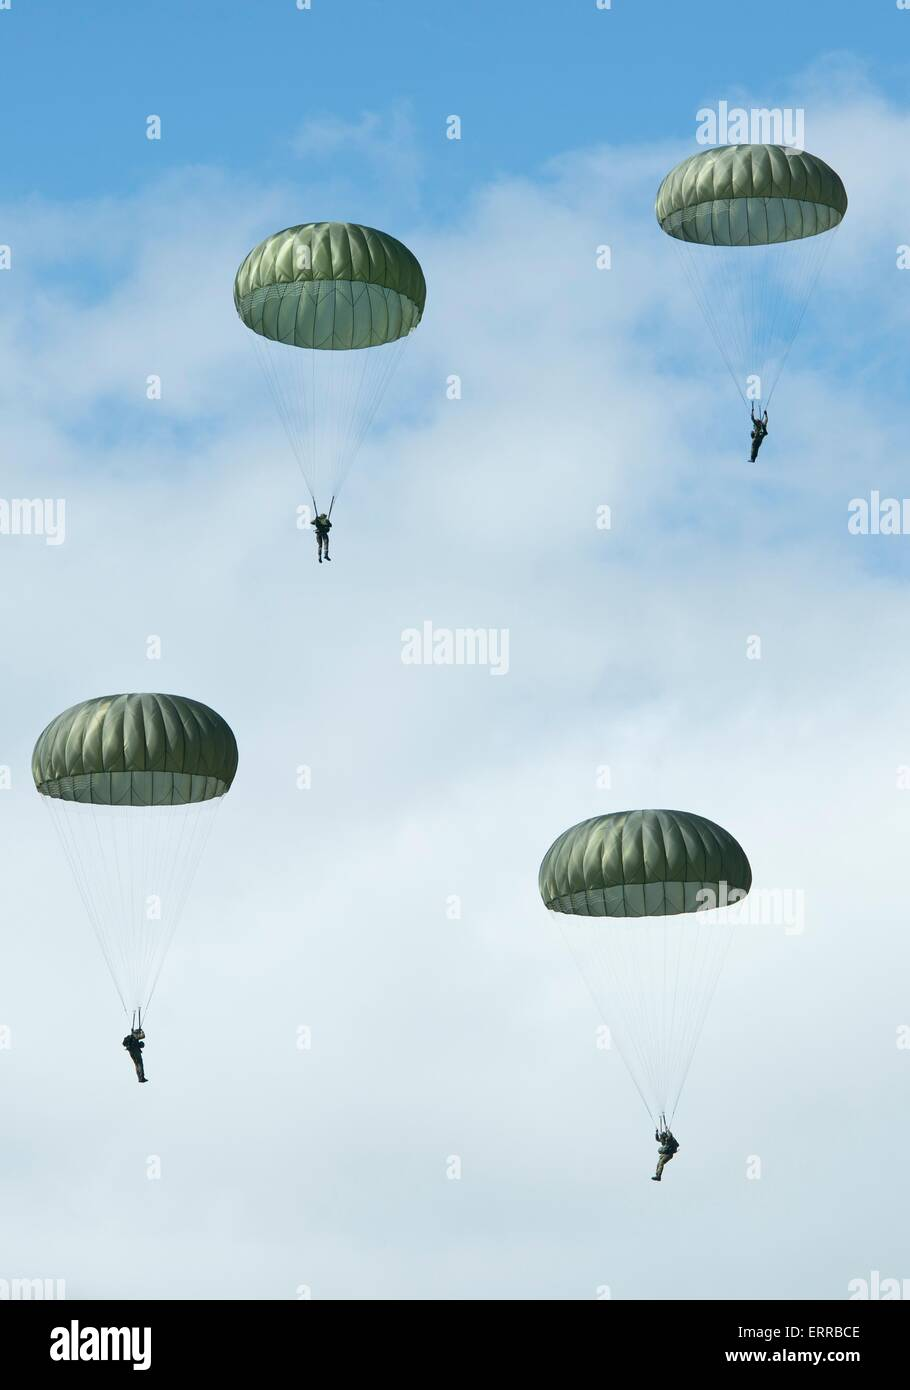 US Army paratroopers parachute over the historic La Fiere drop zone to commemorate the 71st Anniversary of D-Day - Stock Image